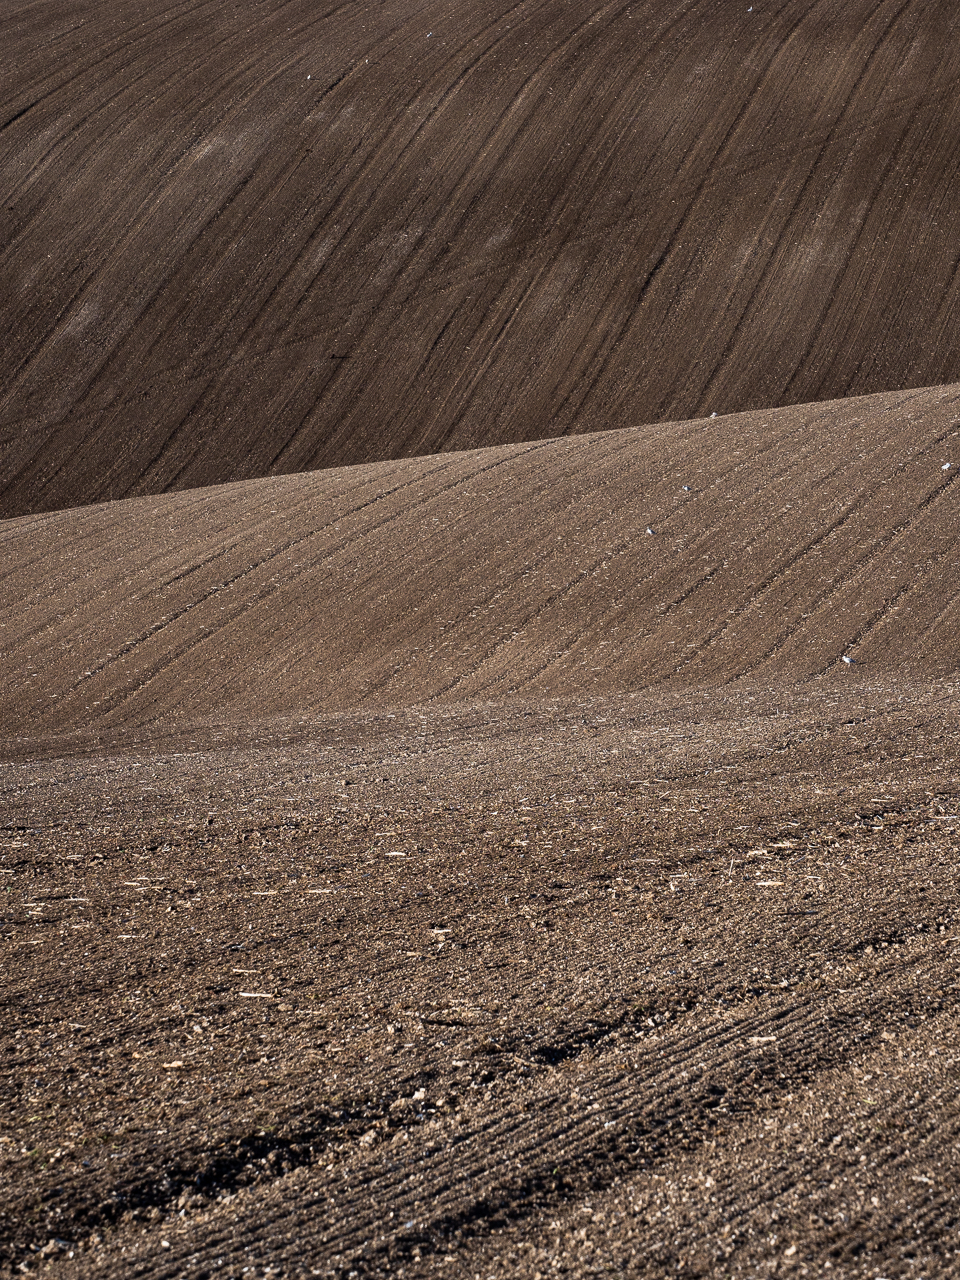 Ploughed soil fields near Firle Beacon, a hill on the South Downs Way, East Sussex, England.